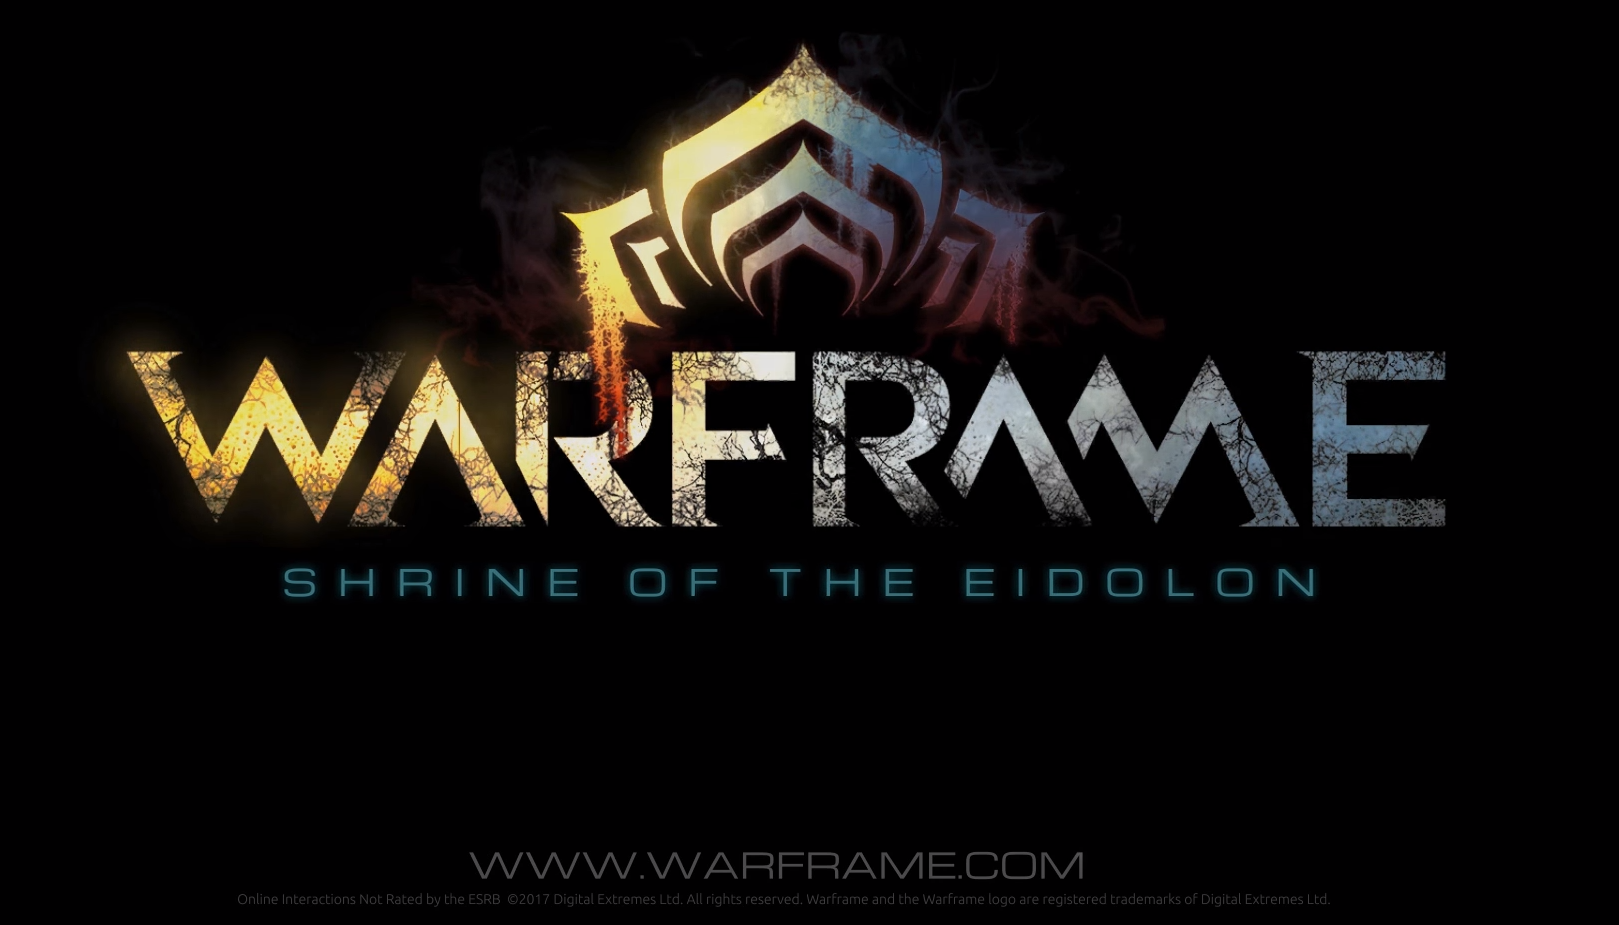 """Shrine of the Eidolon"" update coming to Warframe next week for PS4, Xbox One"